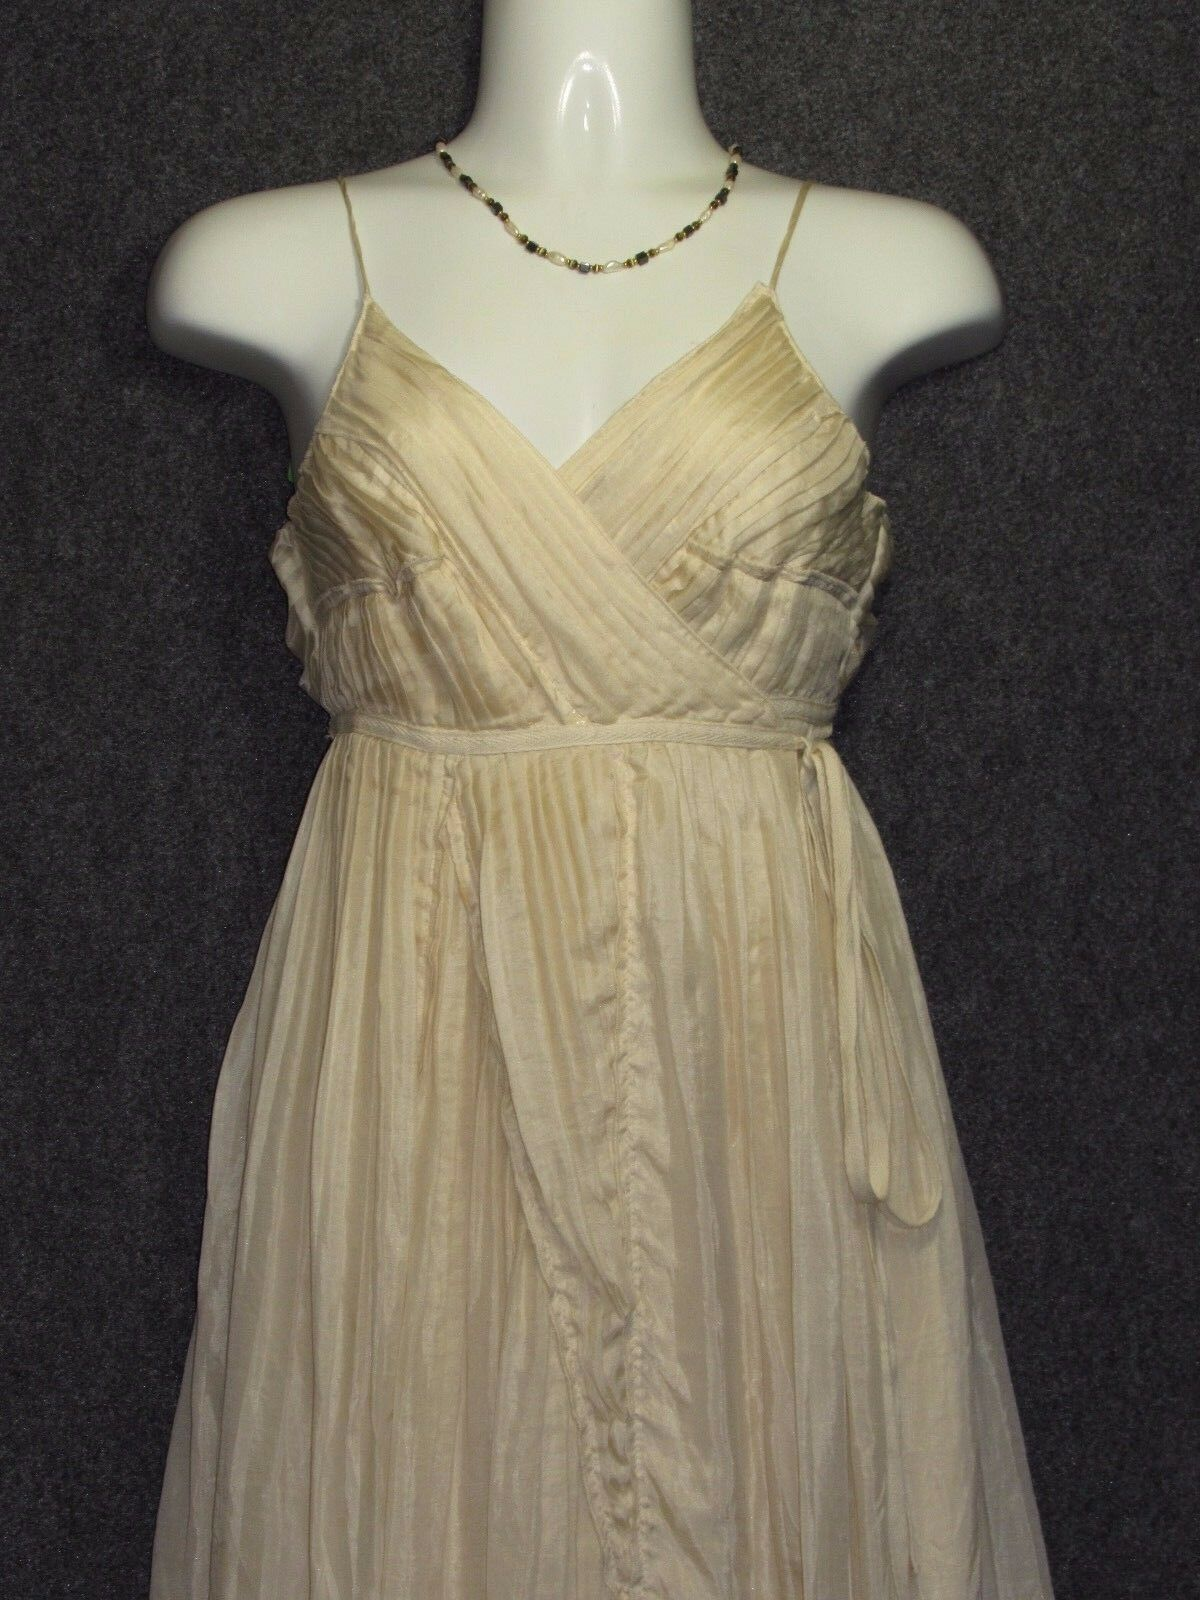 DIANE VON VON VON FURSTENBERG FONTANNE Beige Silk Pleated Wrap DRESS SZ 6 NEW 8780ef